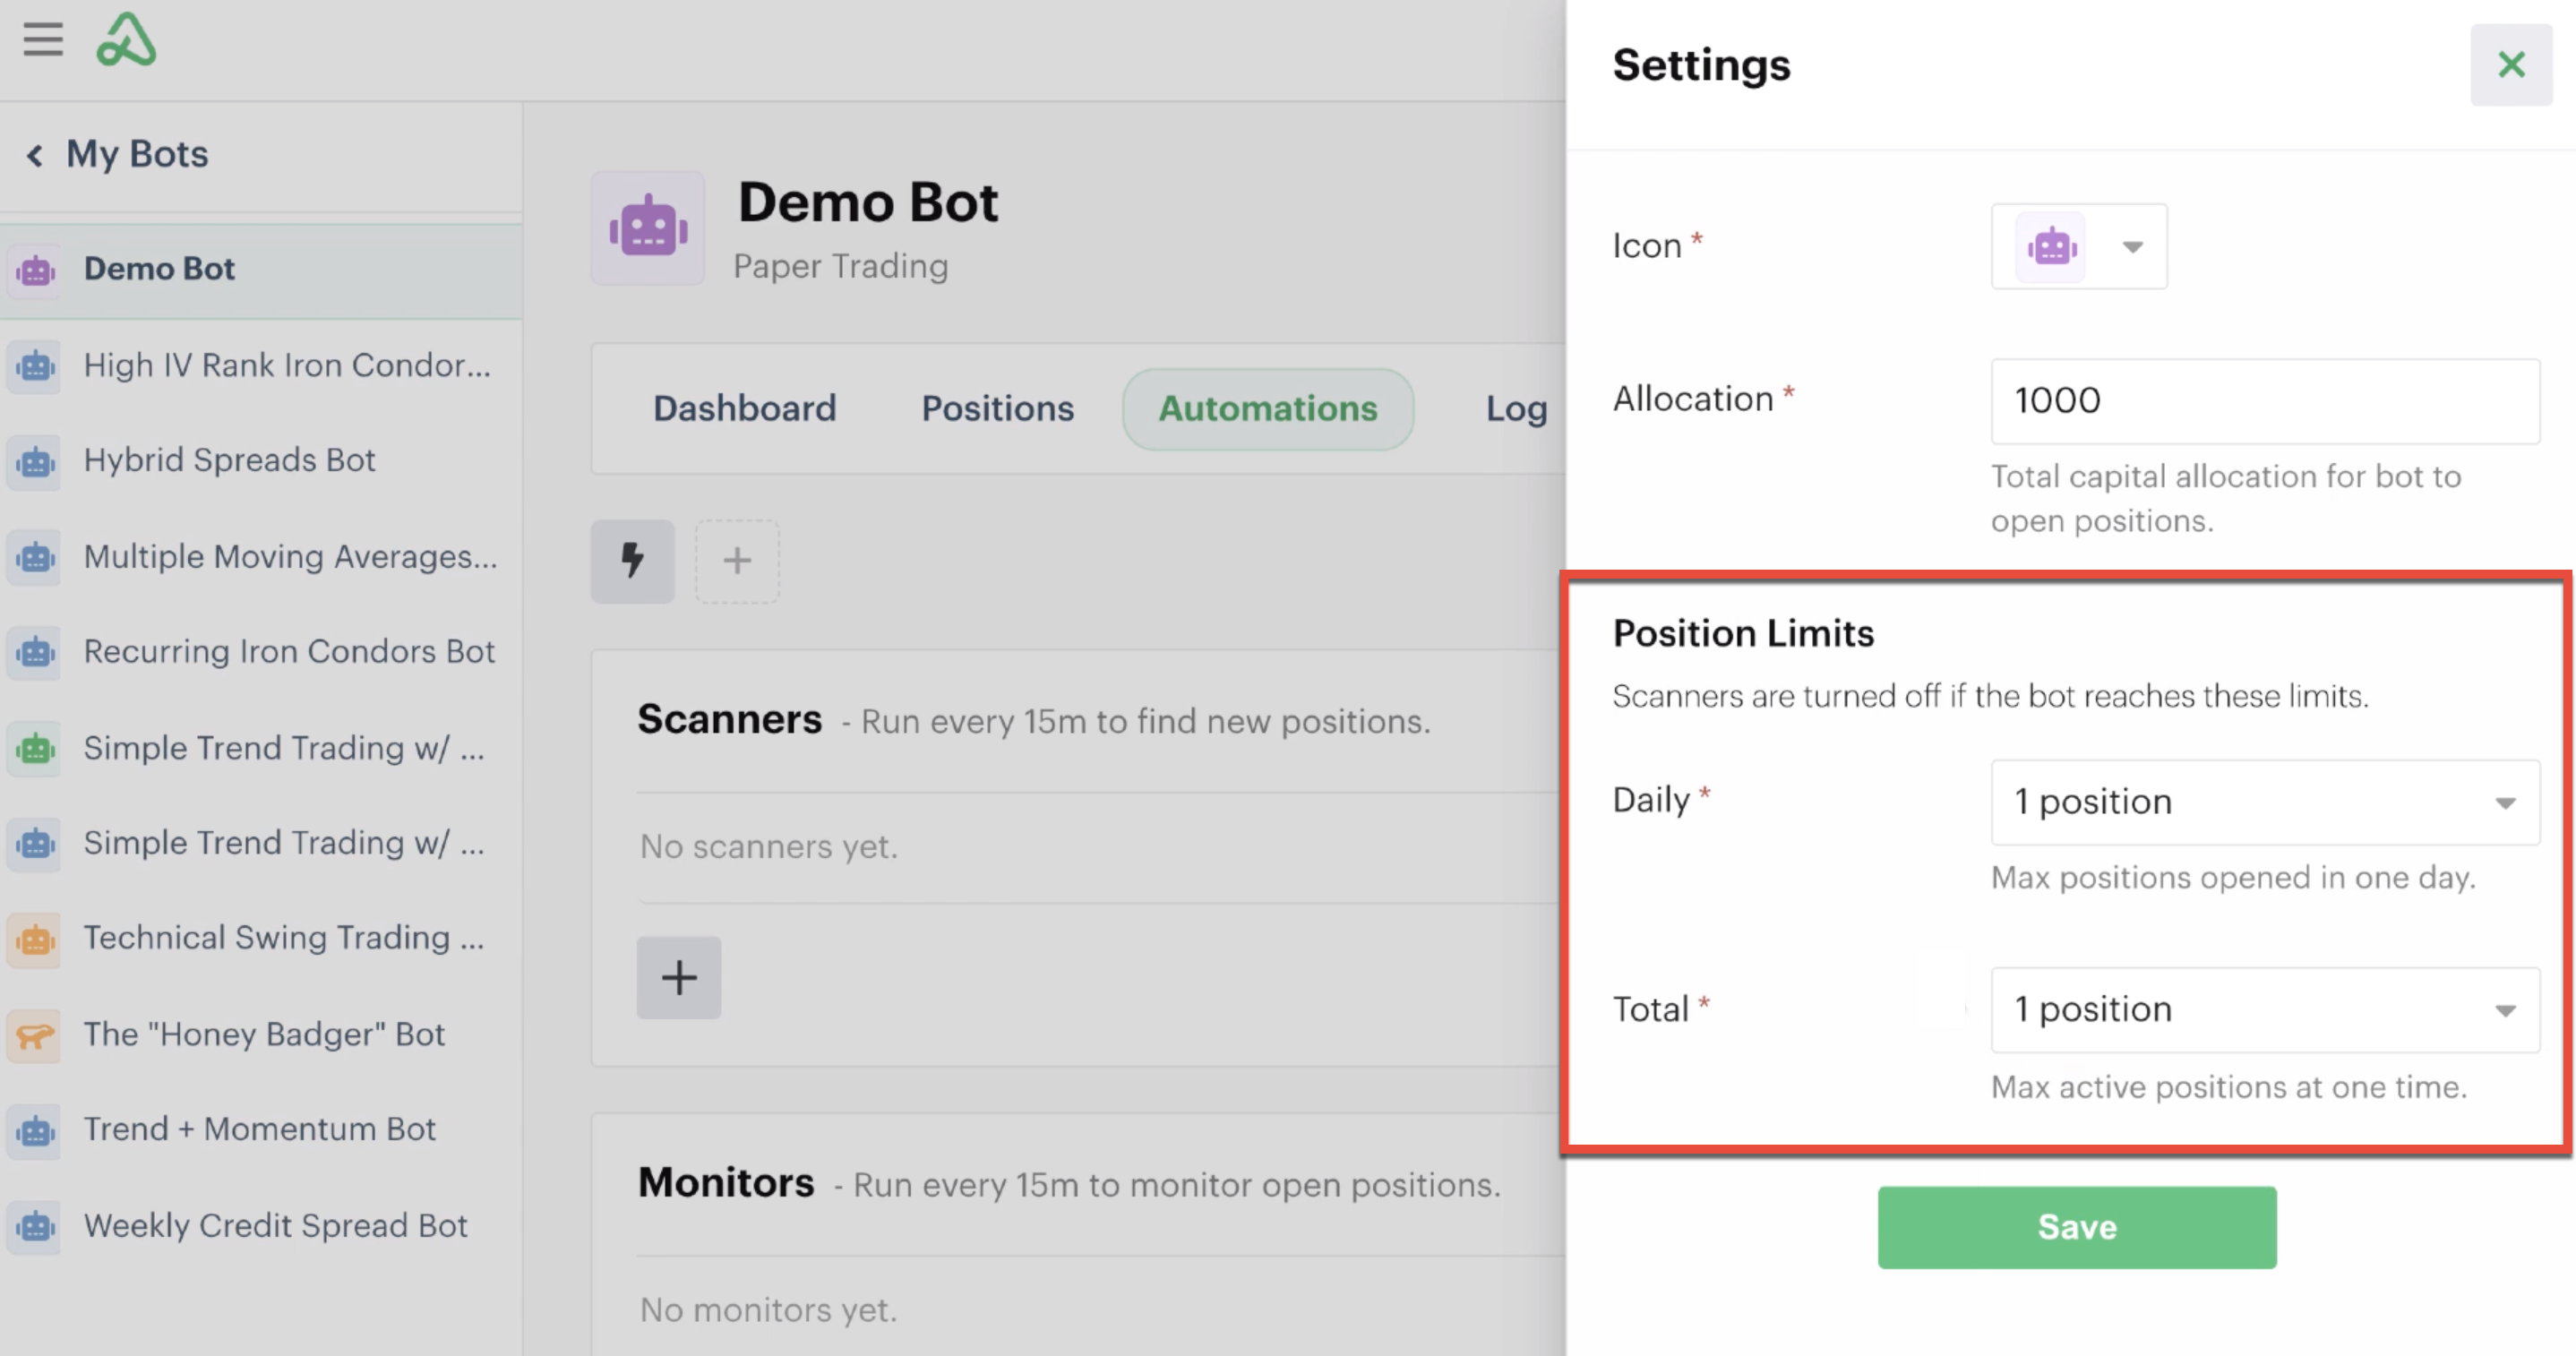 New bot position limits highlighted